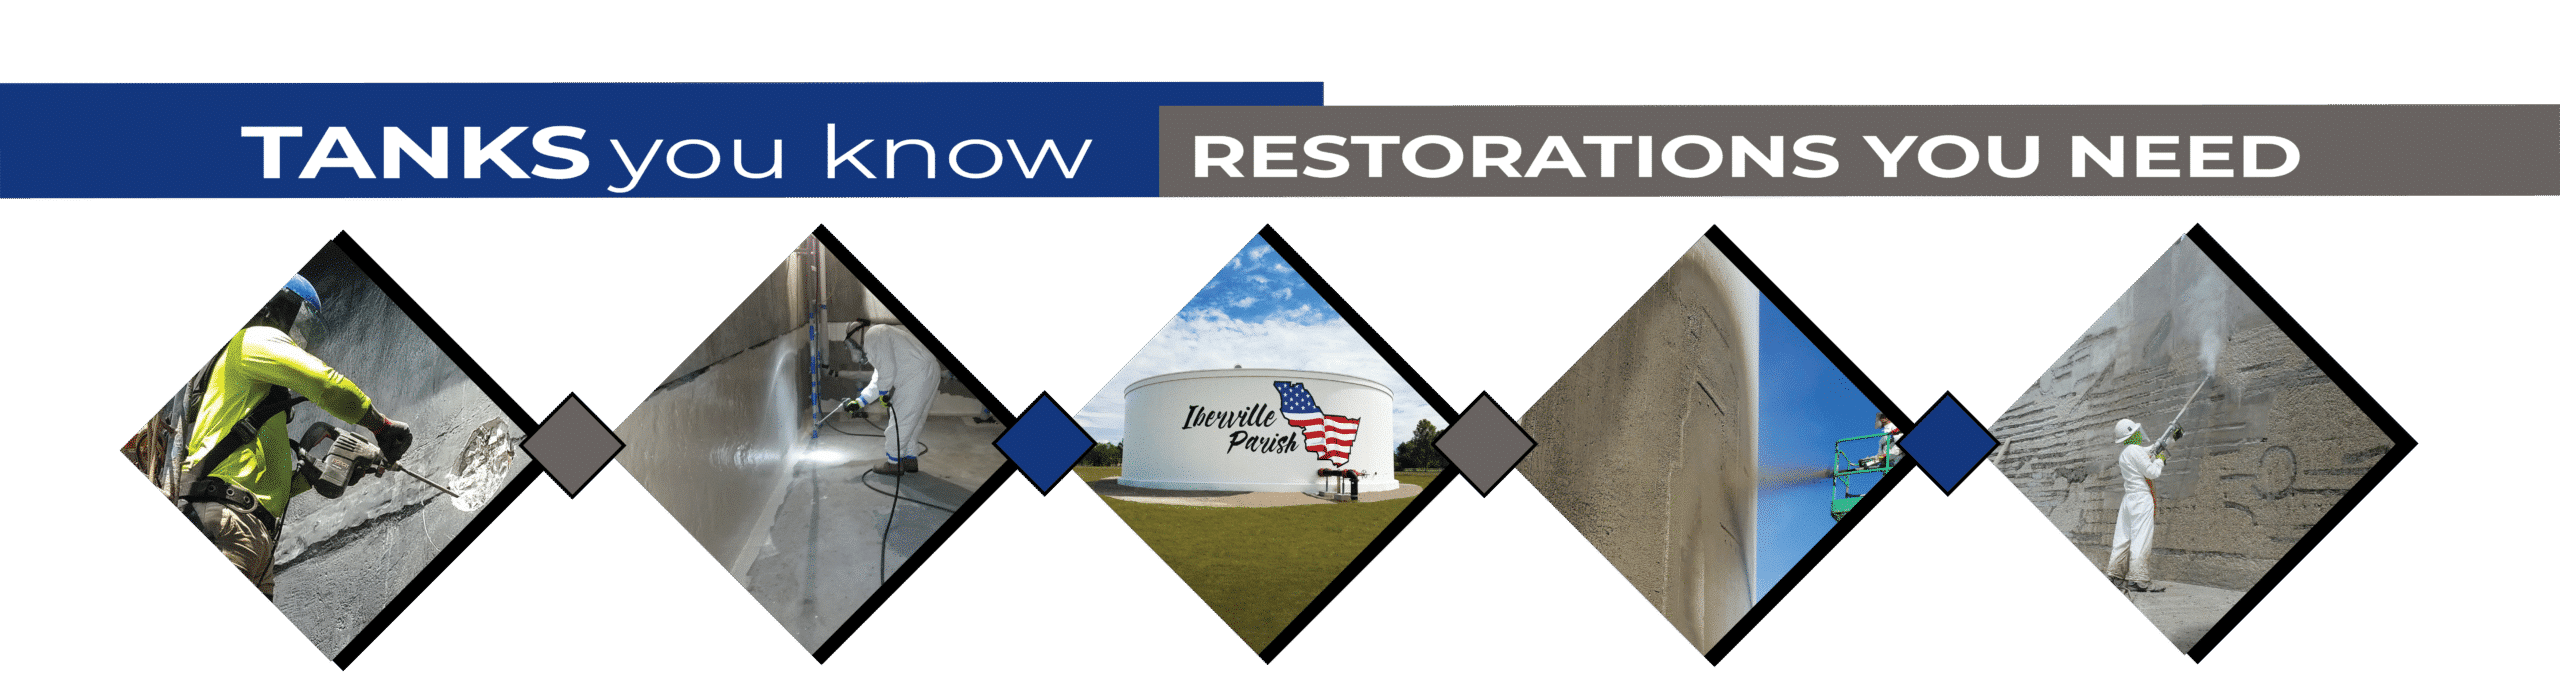 Tanks you know - restorations you need